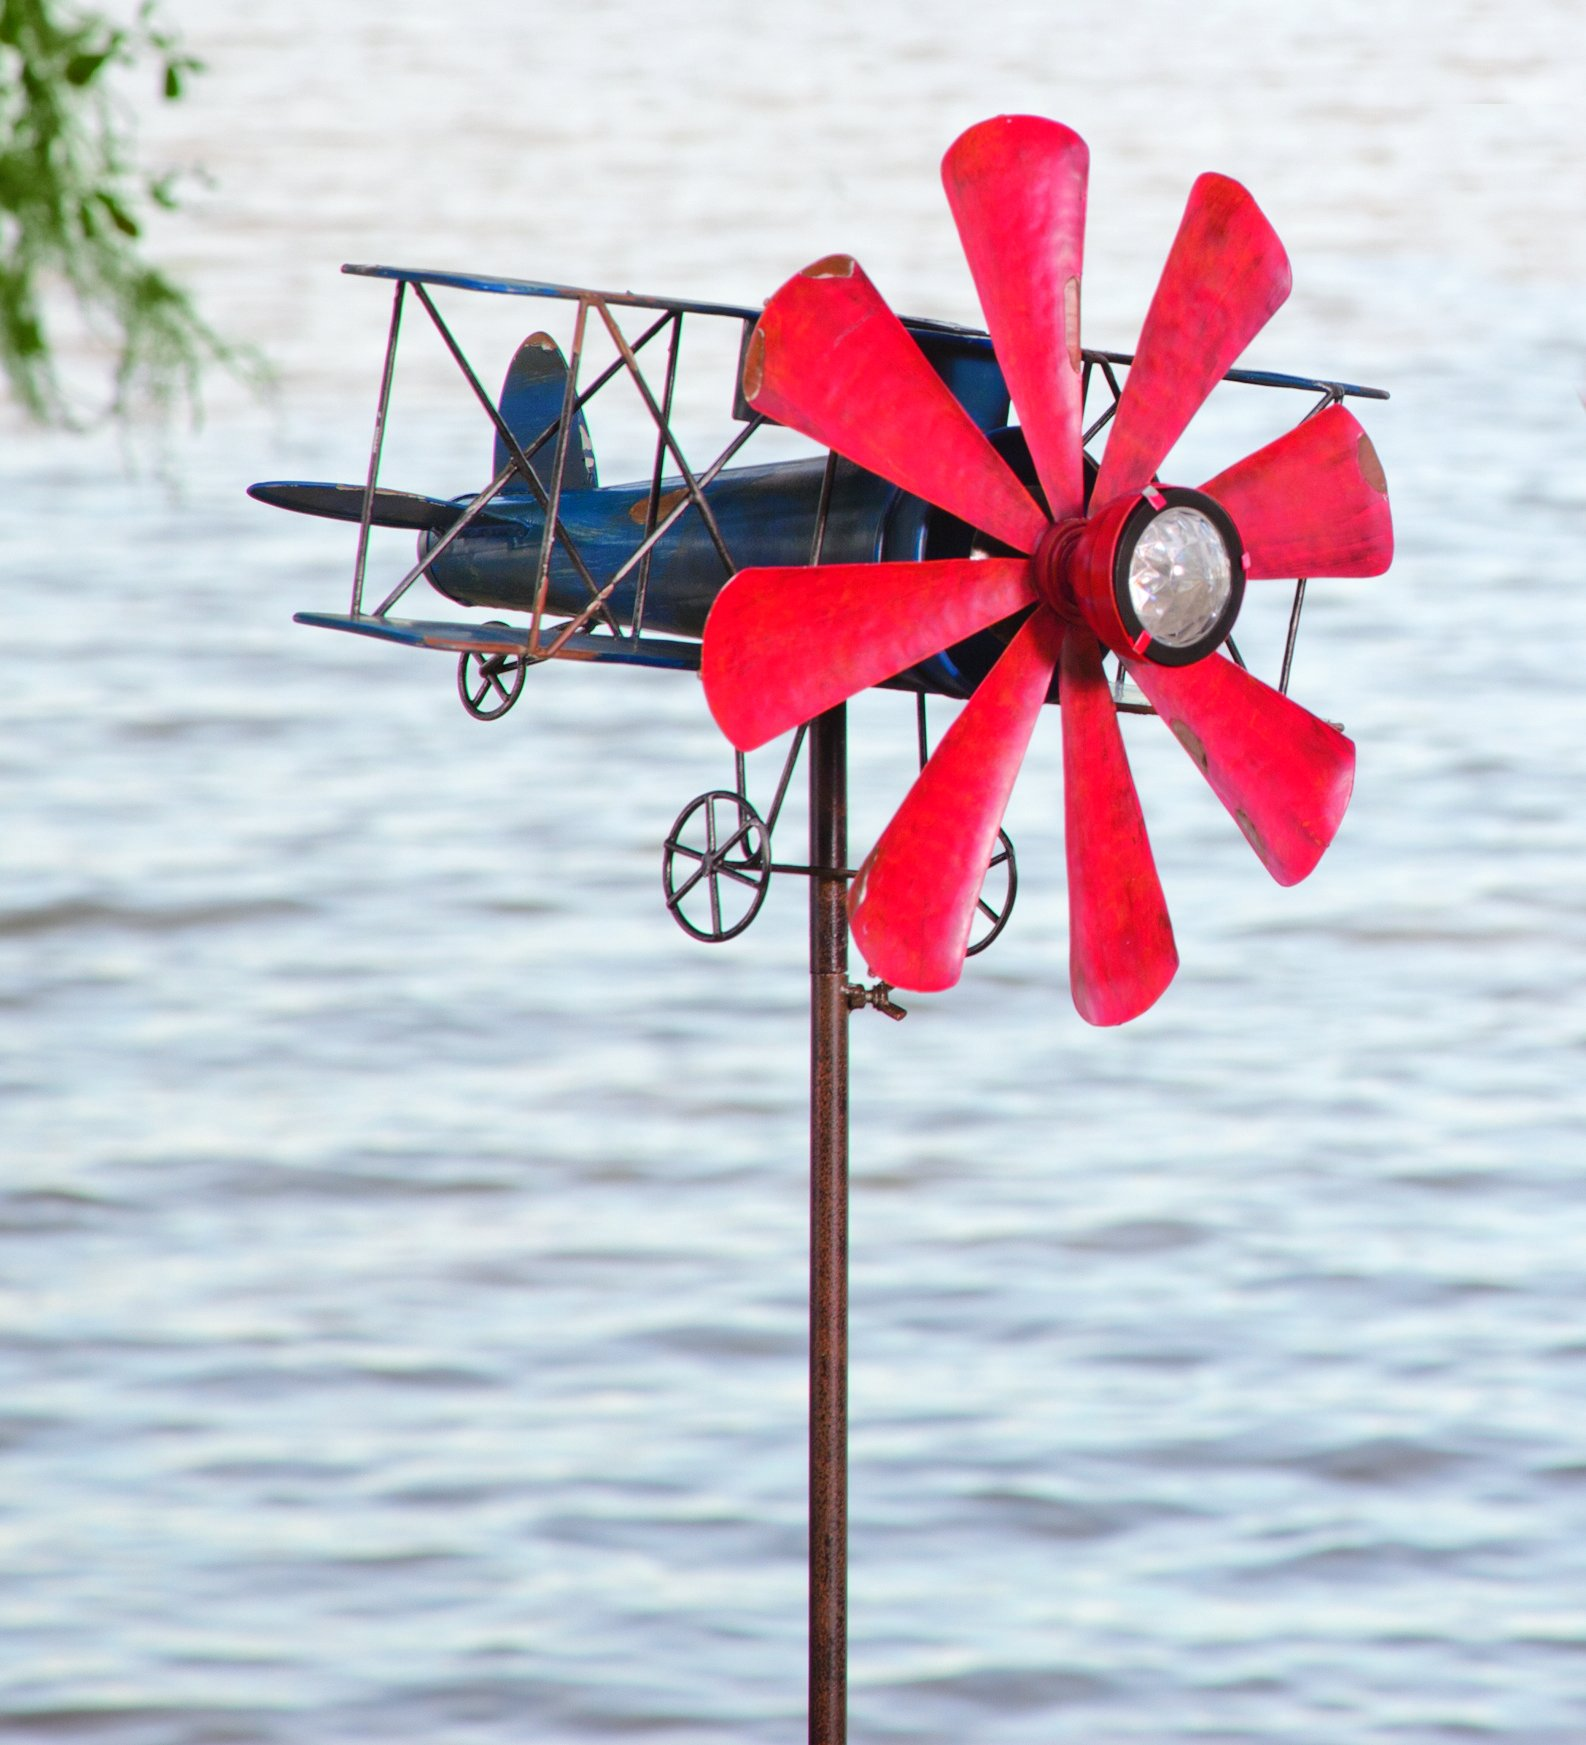 Biplane With Solar Light Metal Wind Spinner Weatherproof Outdoor Kinetic Windmill Sculptures 16 L x 15-1/2 W x 63 H